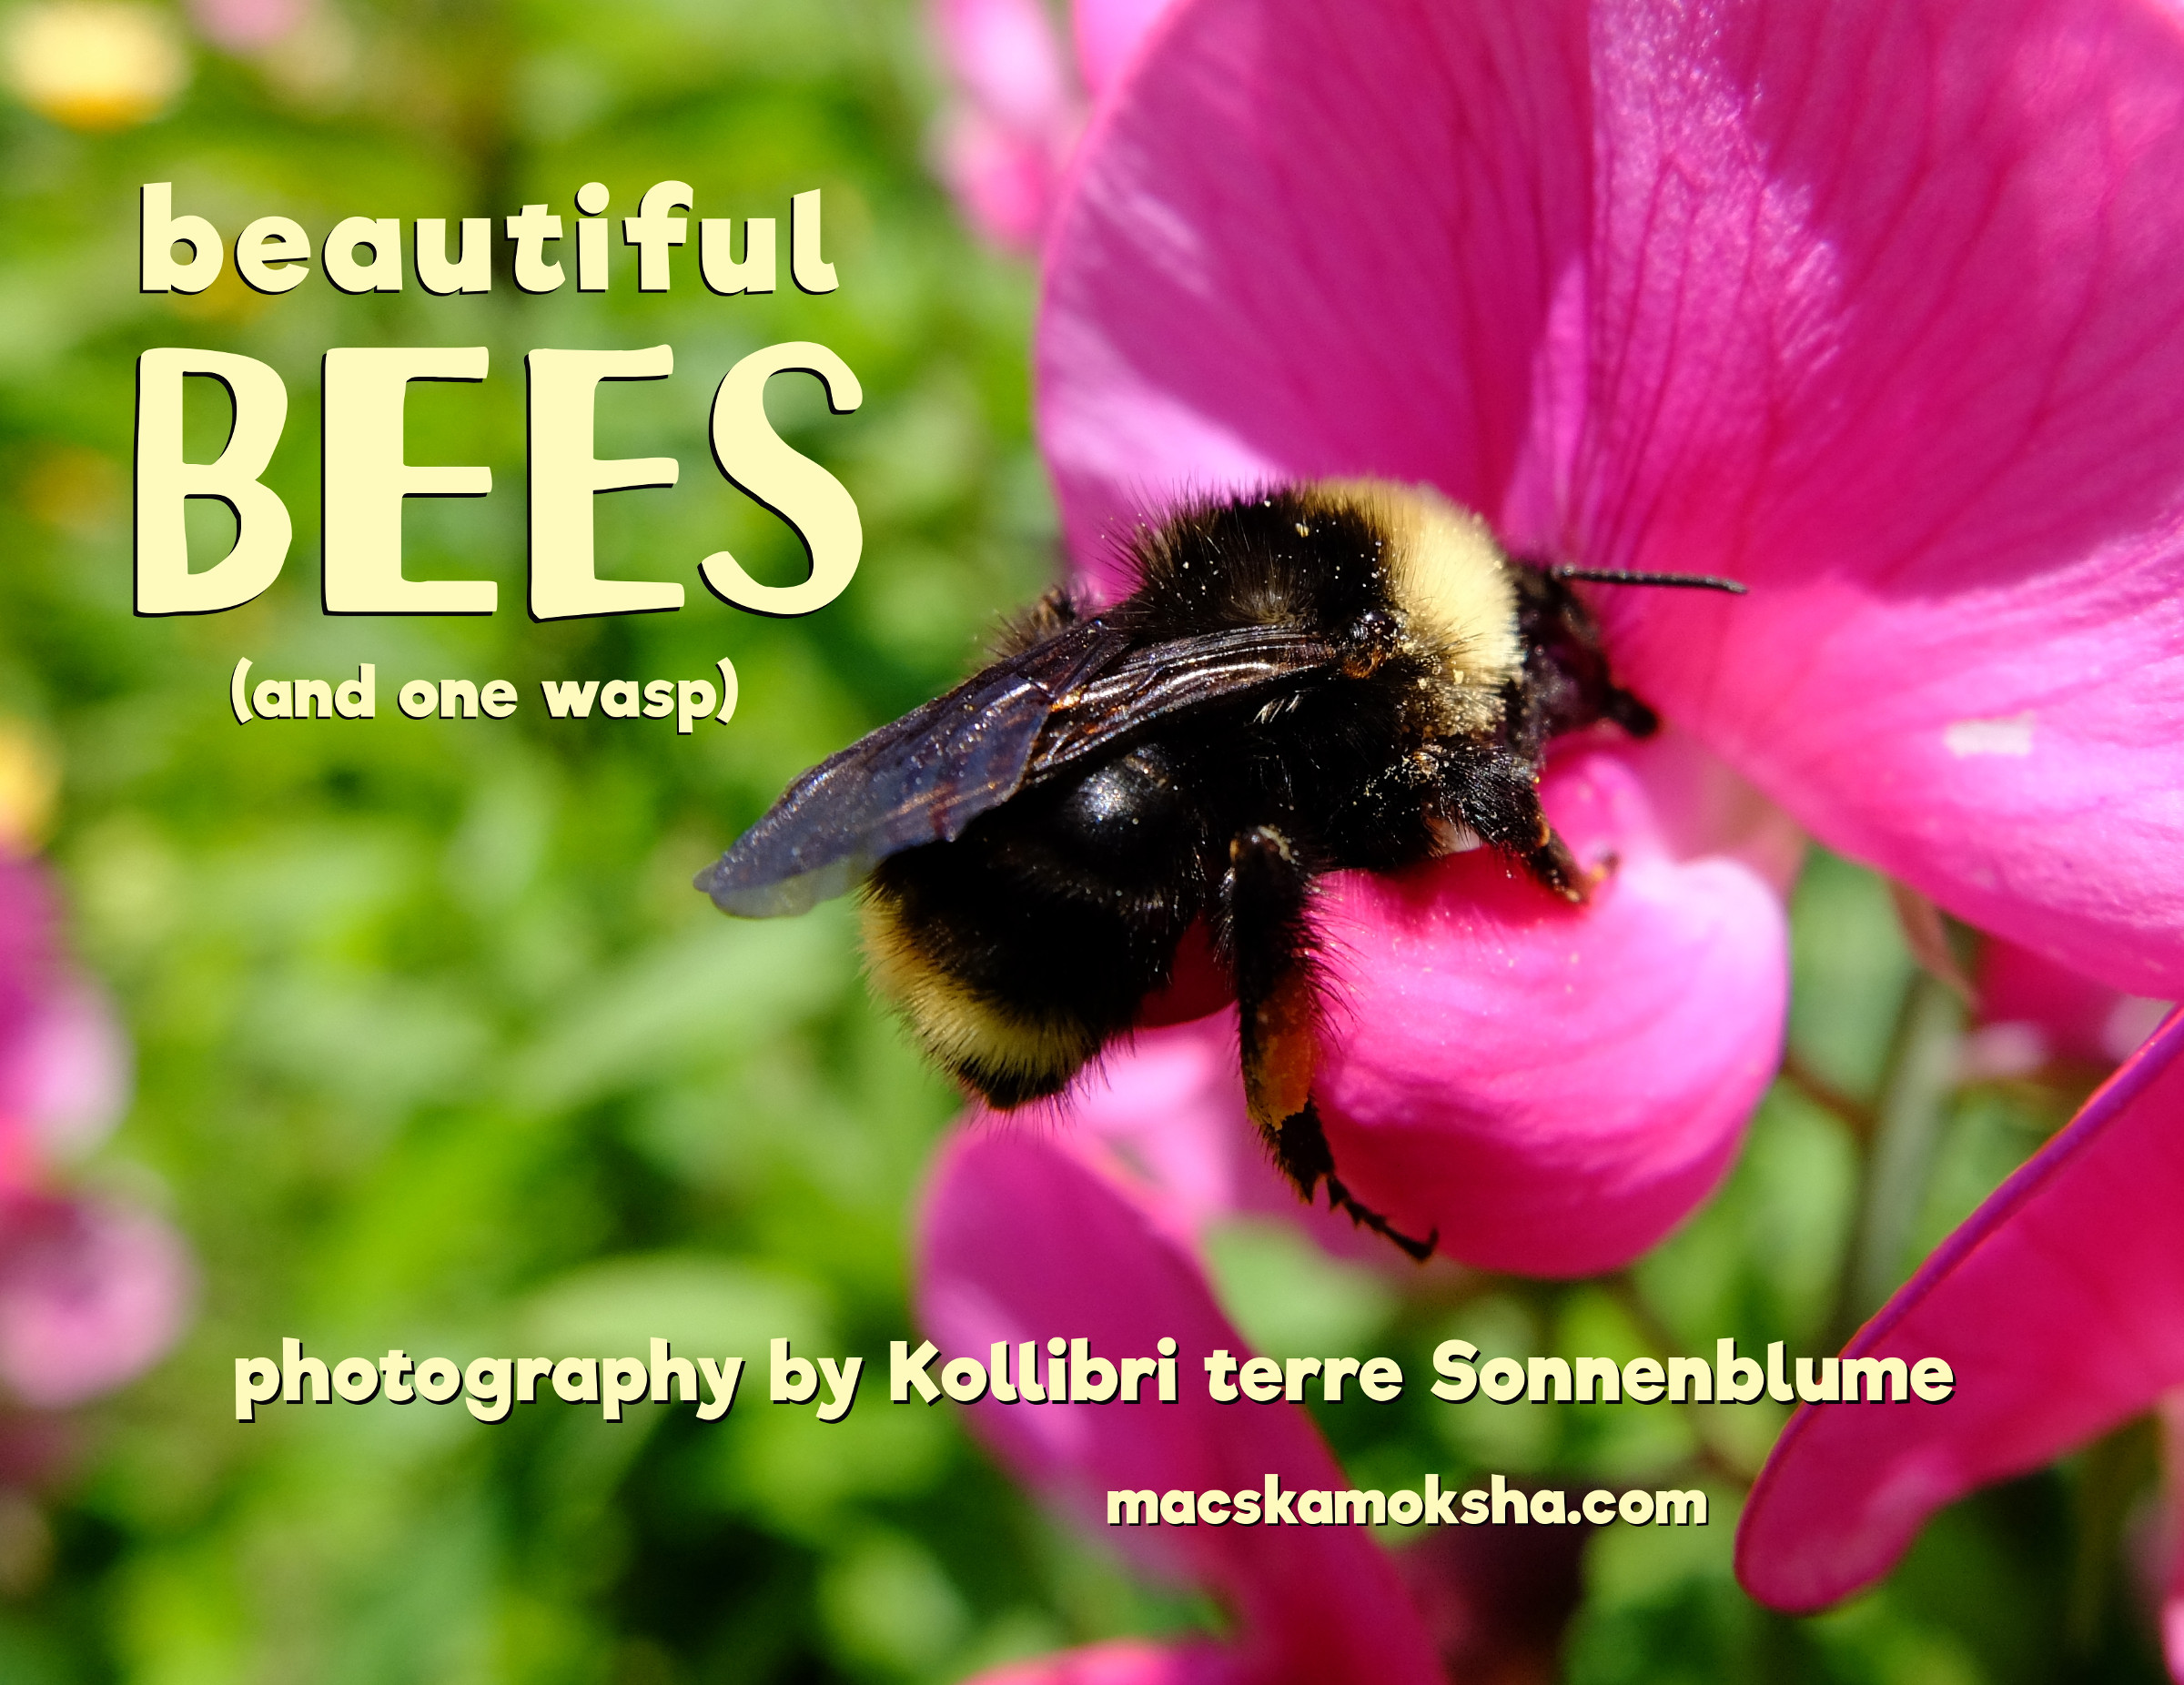 """""""Beautiful Bees (and one wasp)"""" 2020 Calendar"""